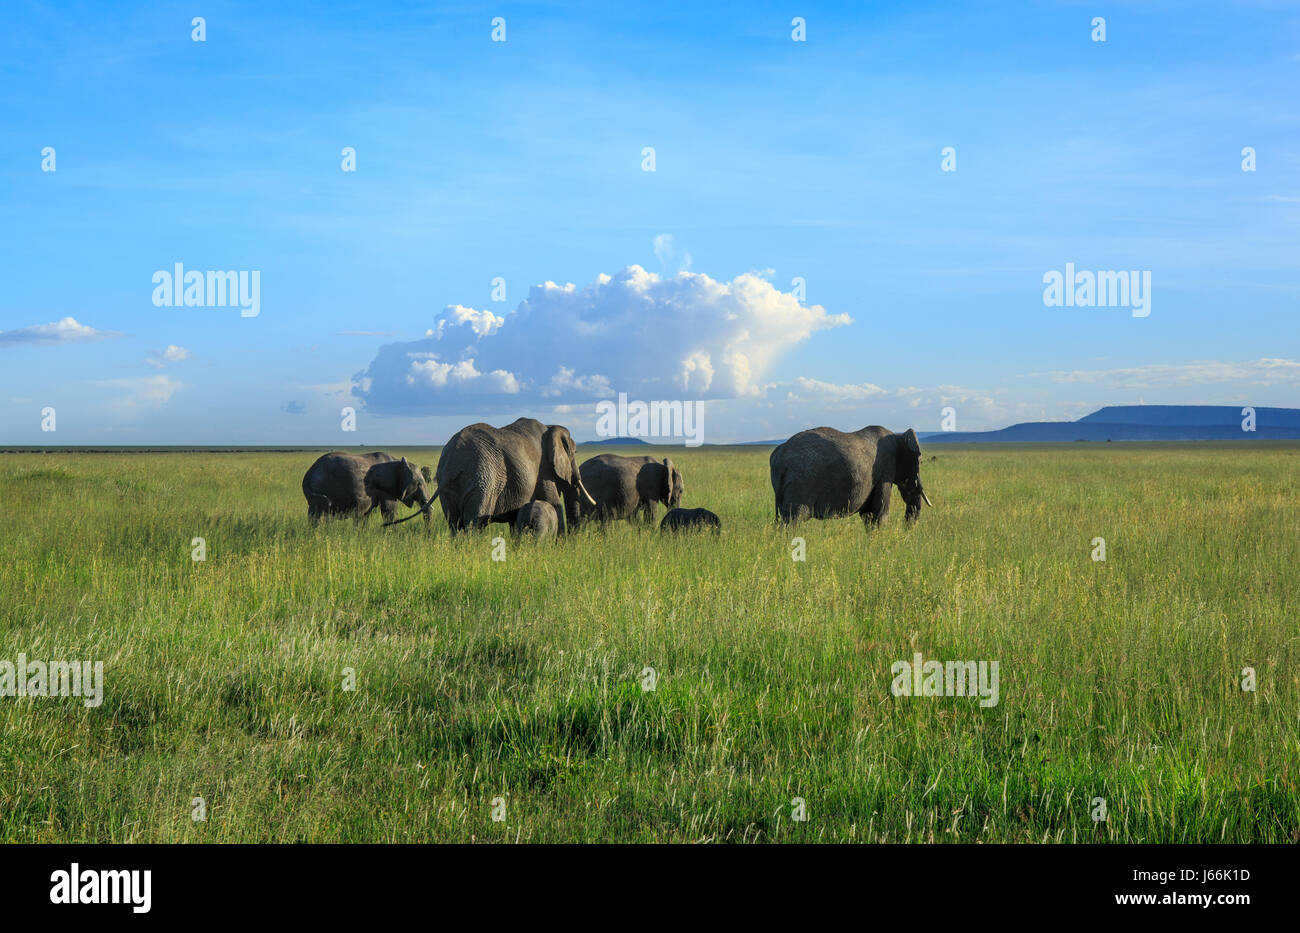 An African elephant matriarch leads her herd into the Savannah in search of food or water in a classic 'Out - Stock Image